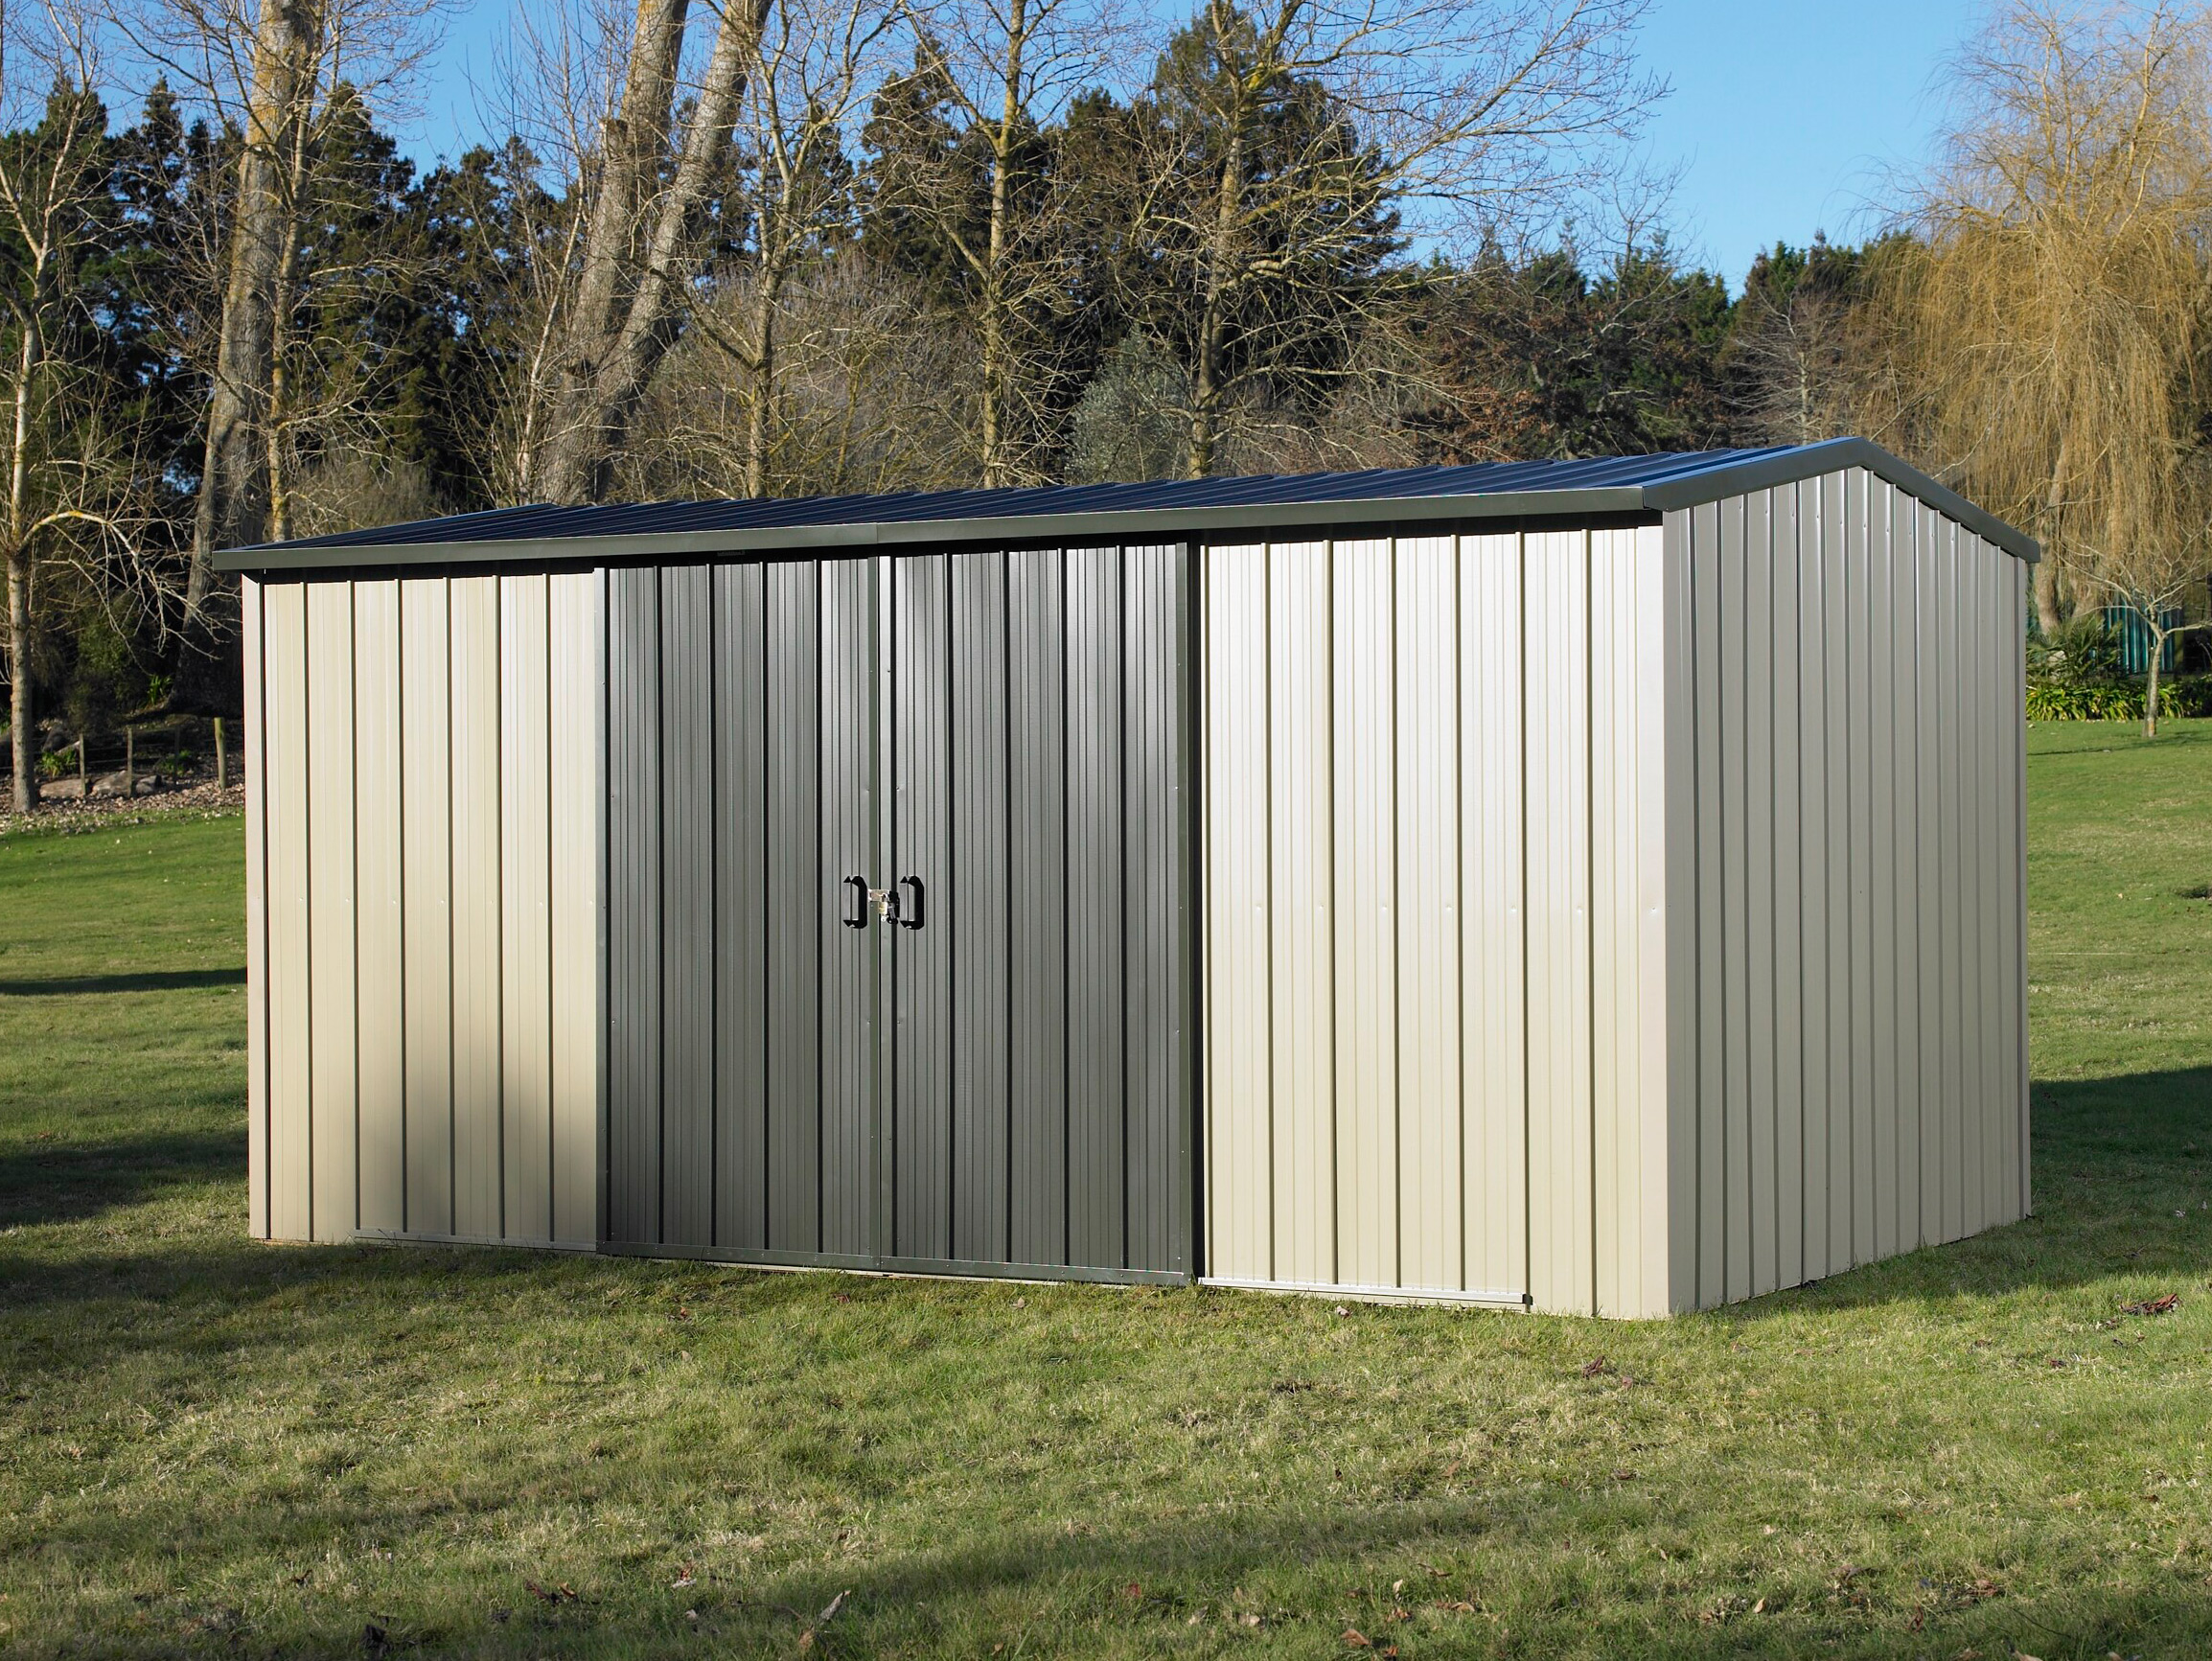 Duratuf Kiwi MK4A Garden Shed Doors Closed